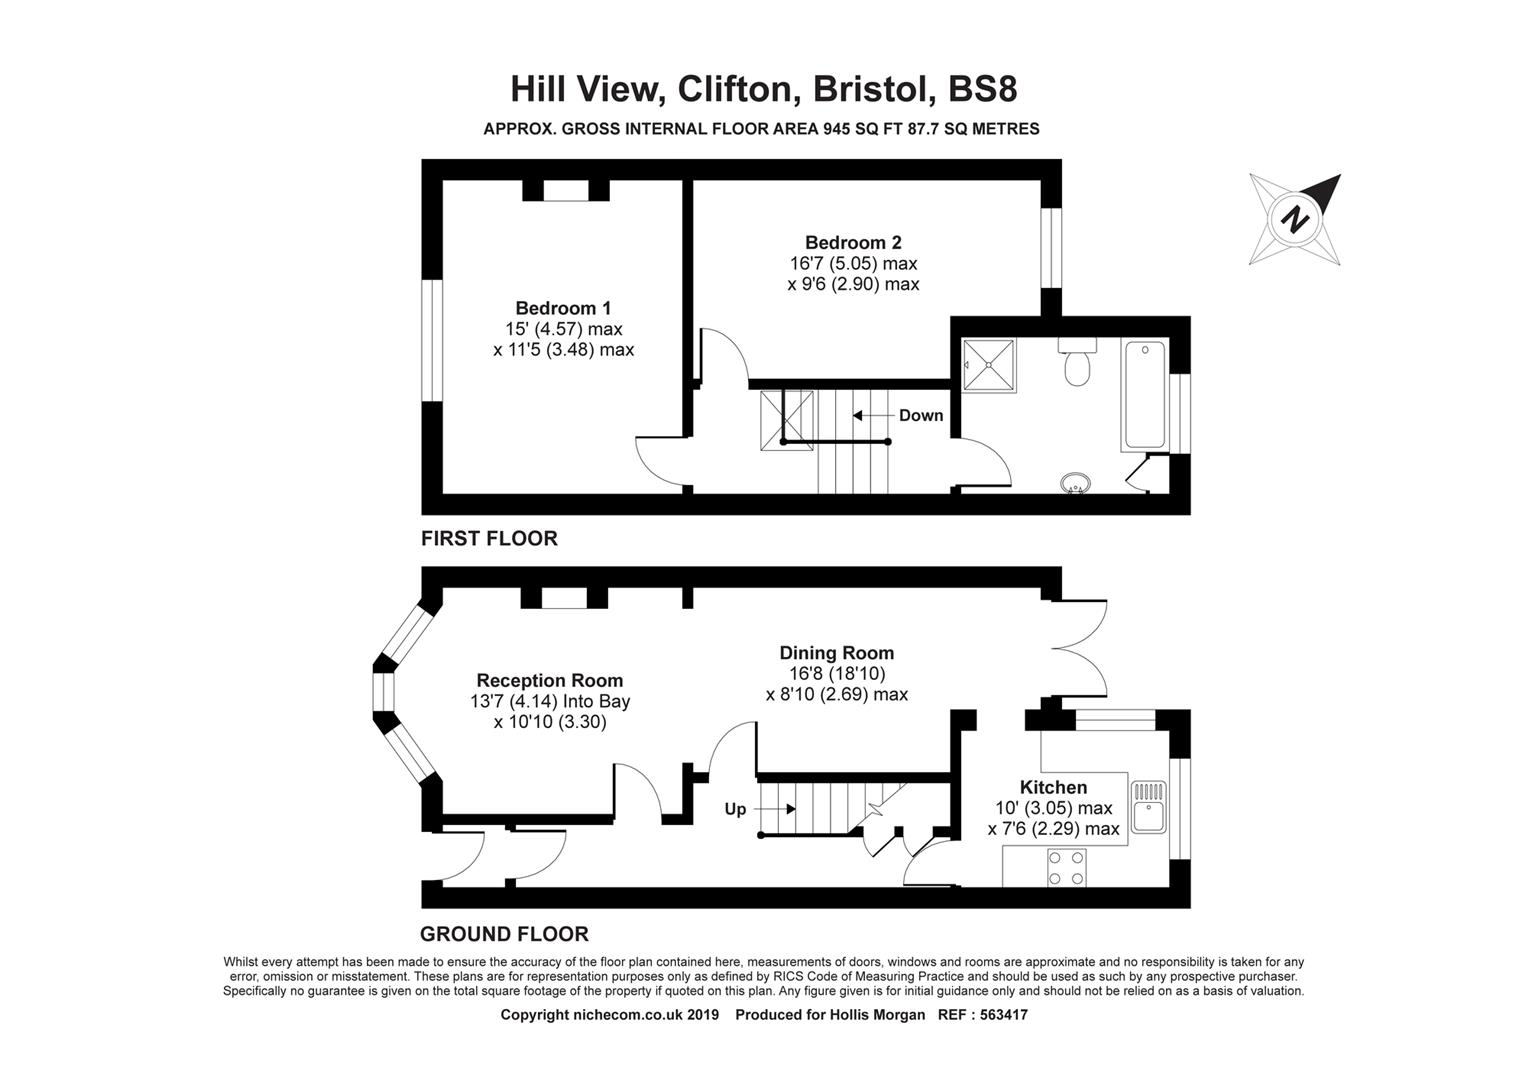 Floorplans For Hill View, Cliftonwood